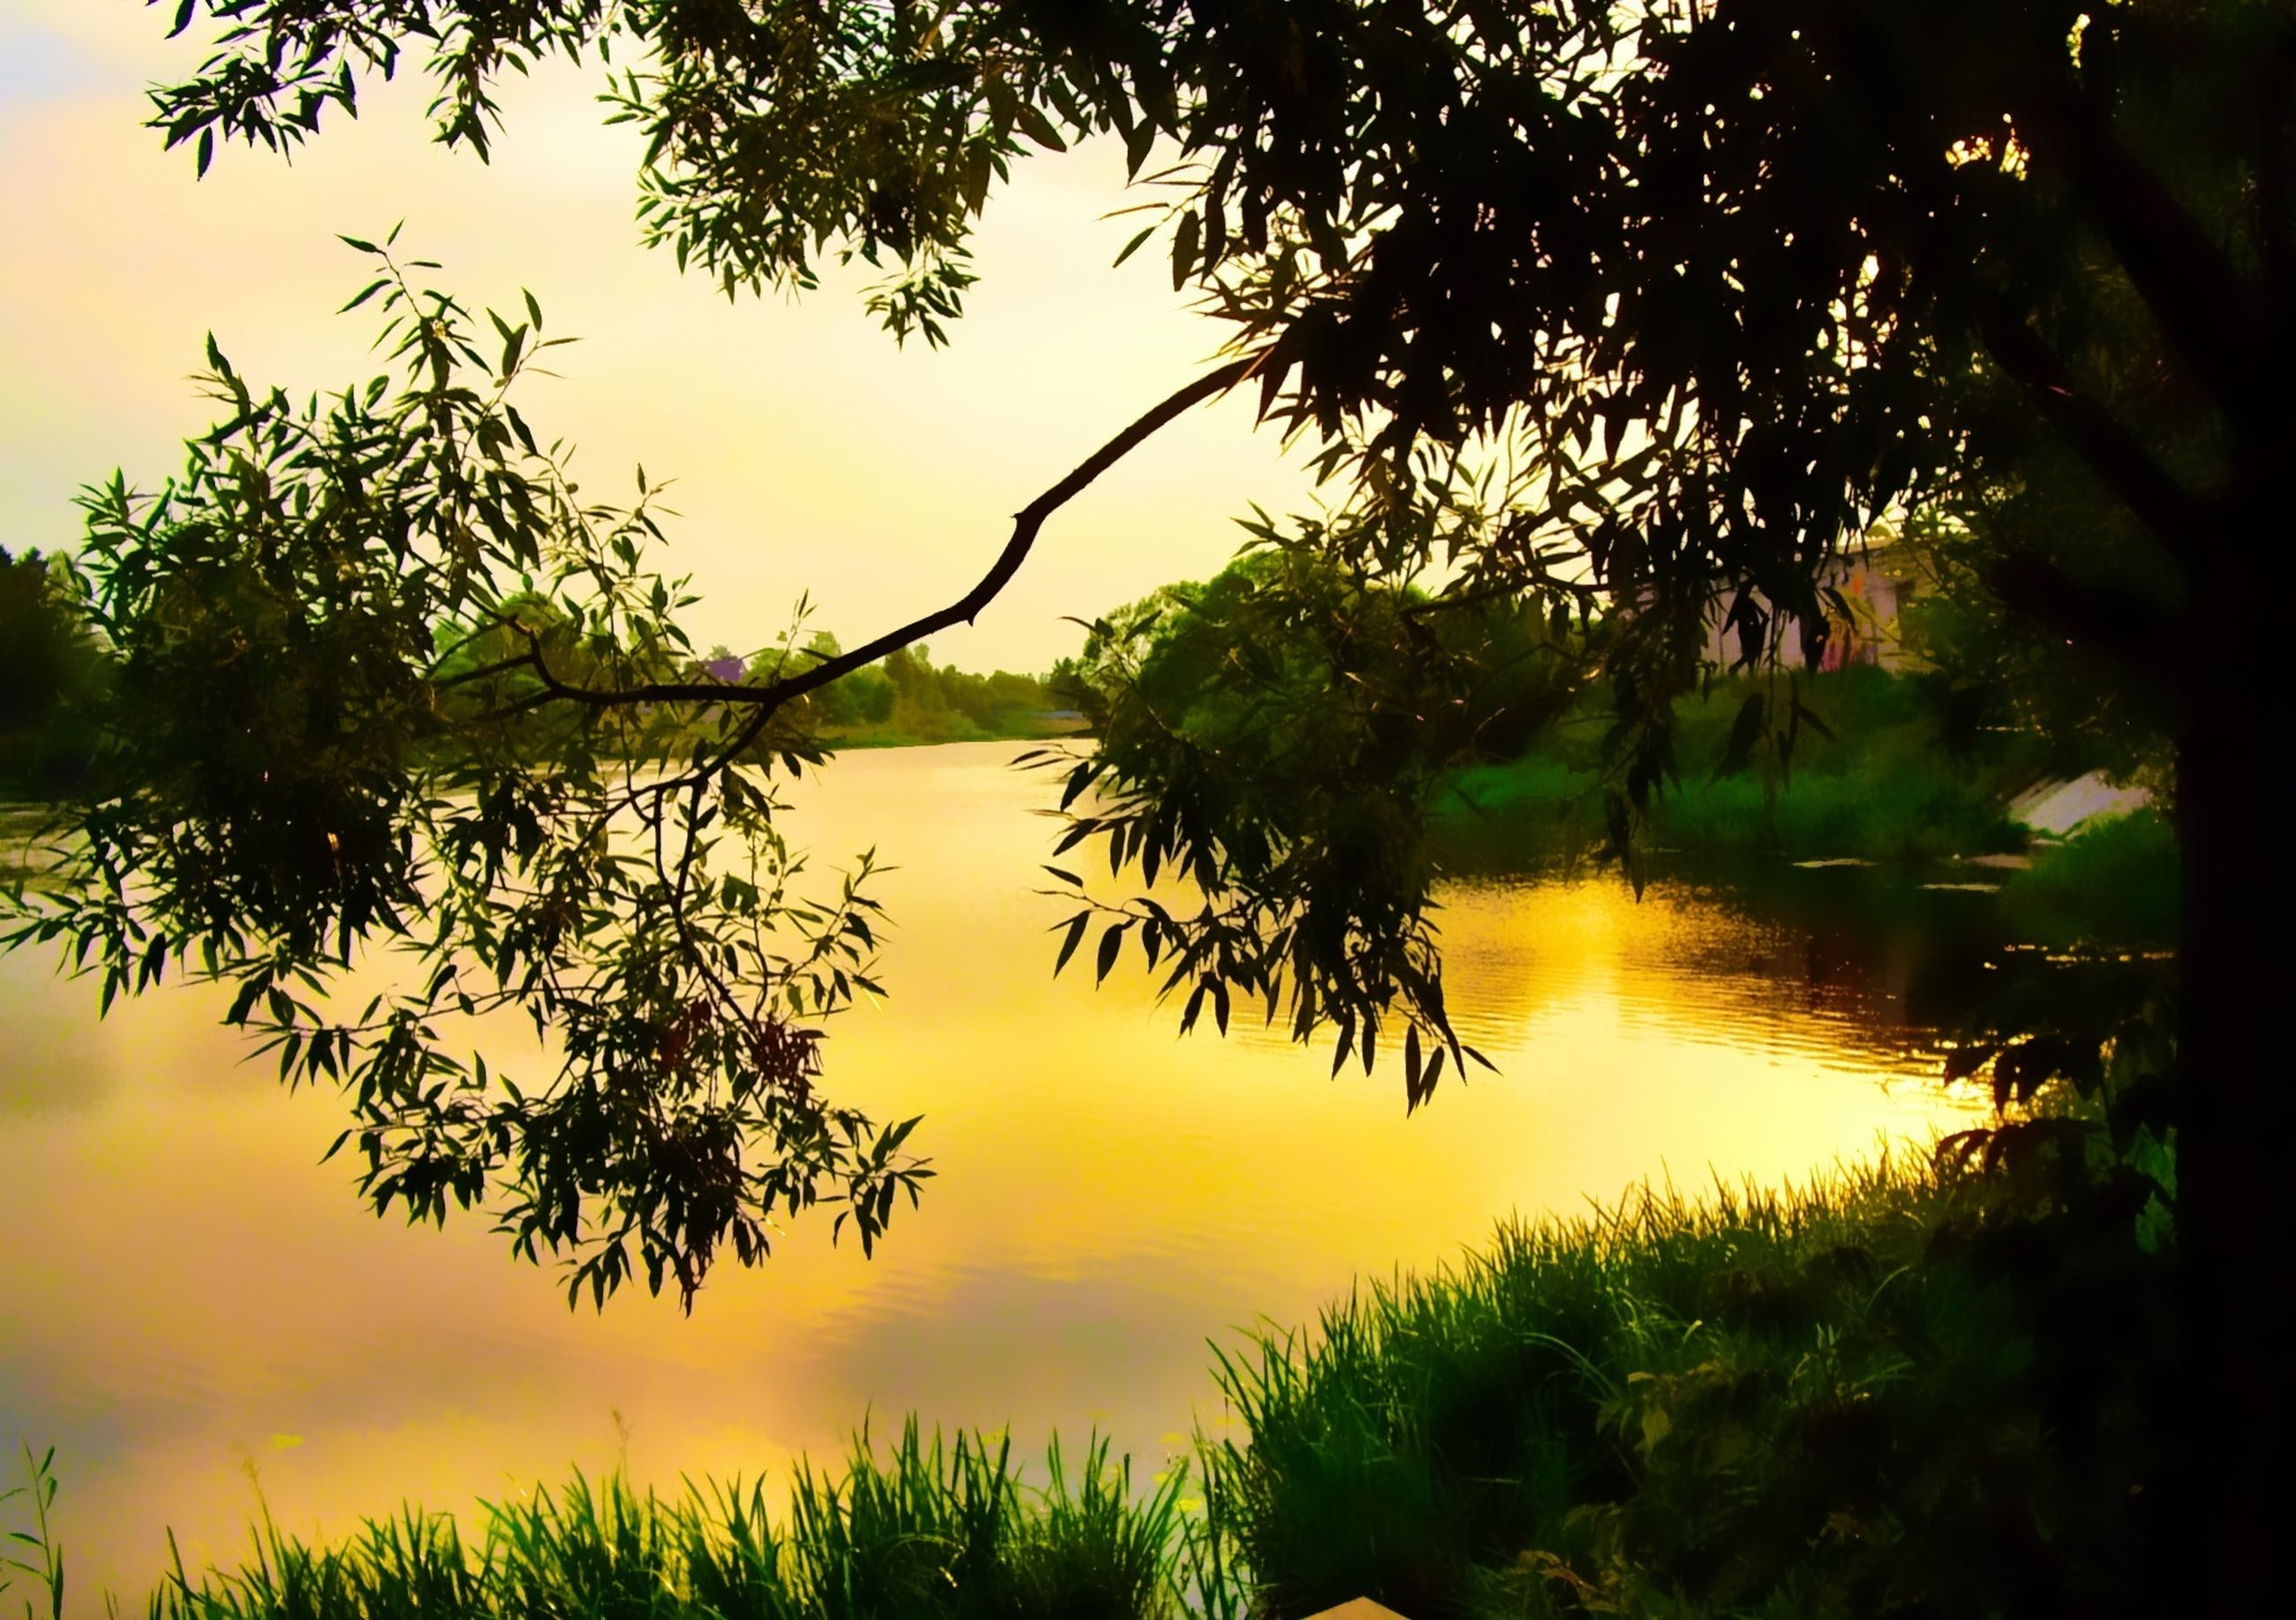 sunset, tranquility, tranquil scene, water, tree, scenics, lake, beauty in nature, reflection, silhouette, nature, sky, growth, idyllic, branch, plant, sun, majestic, outdoors, no people